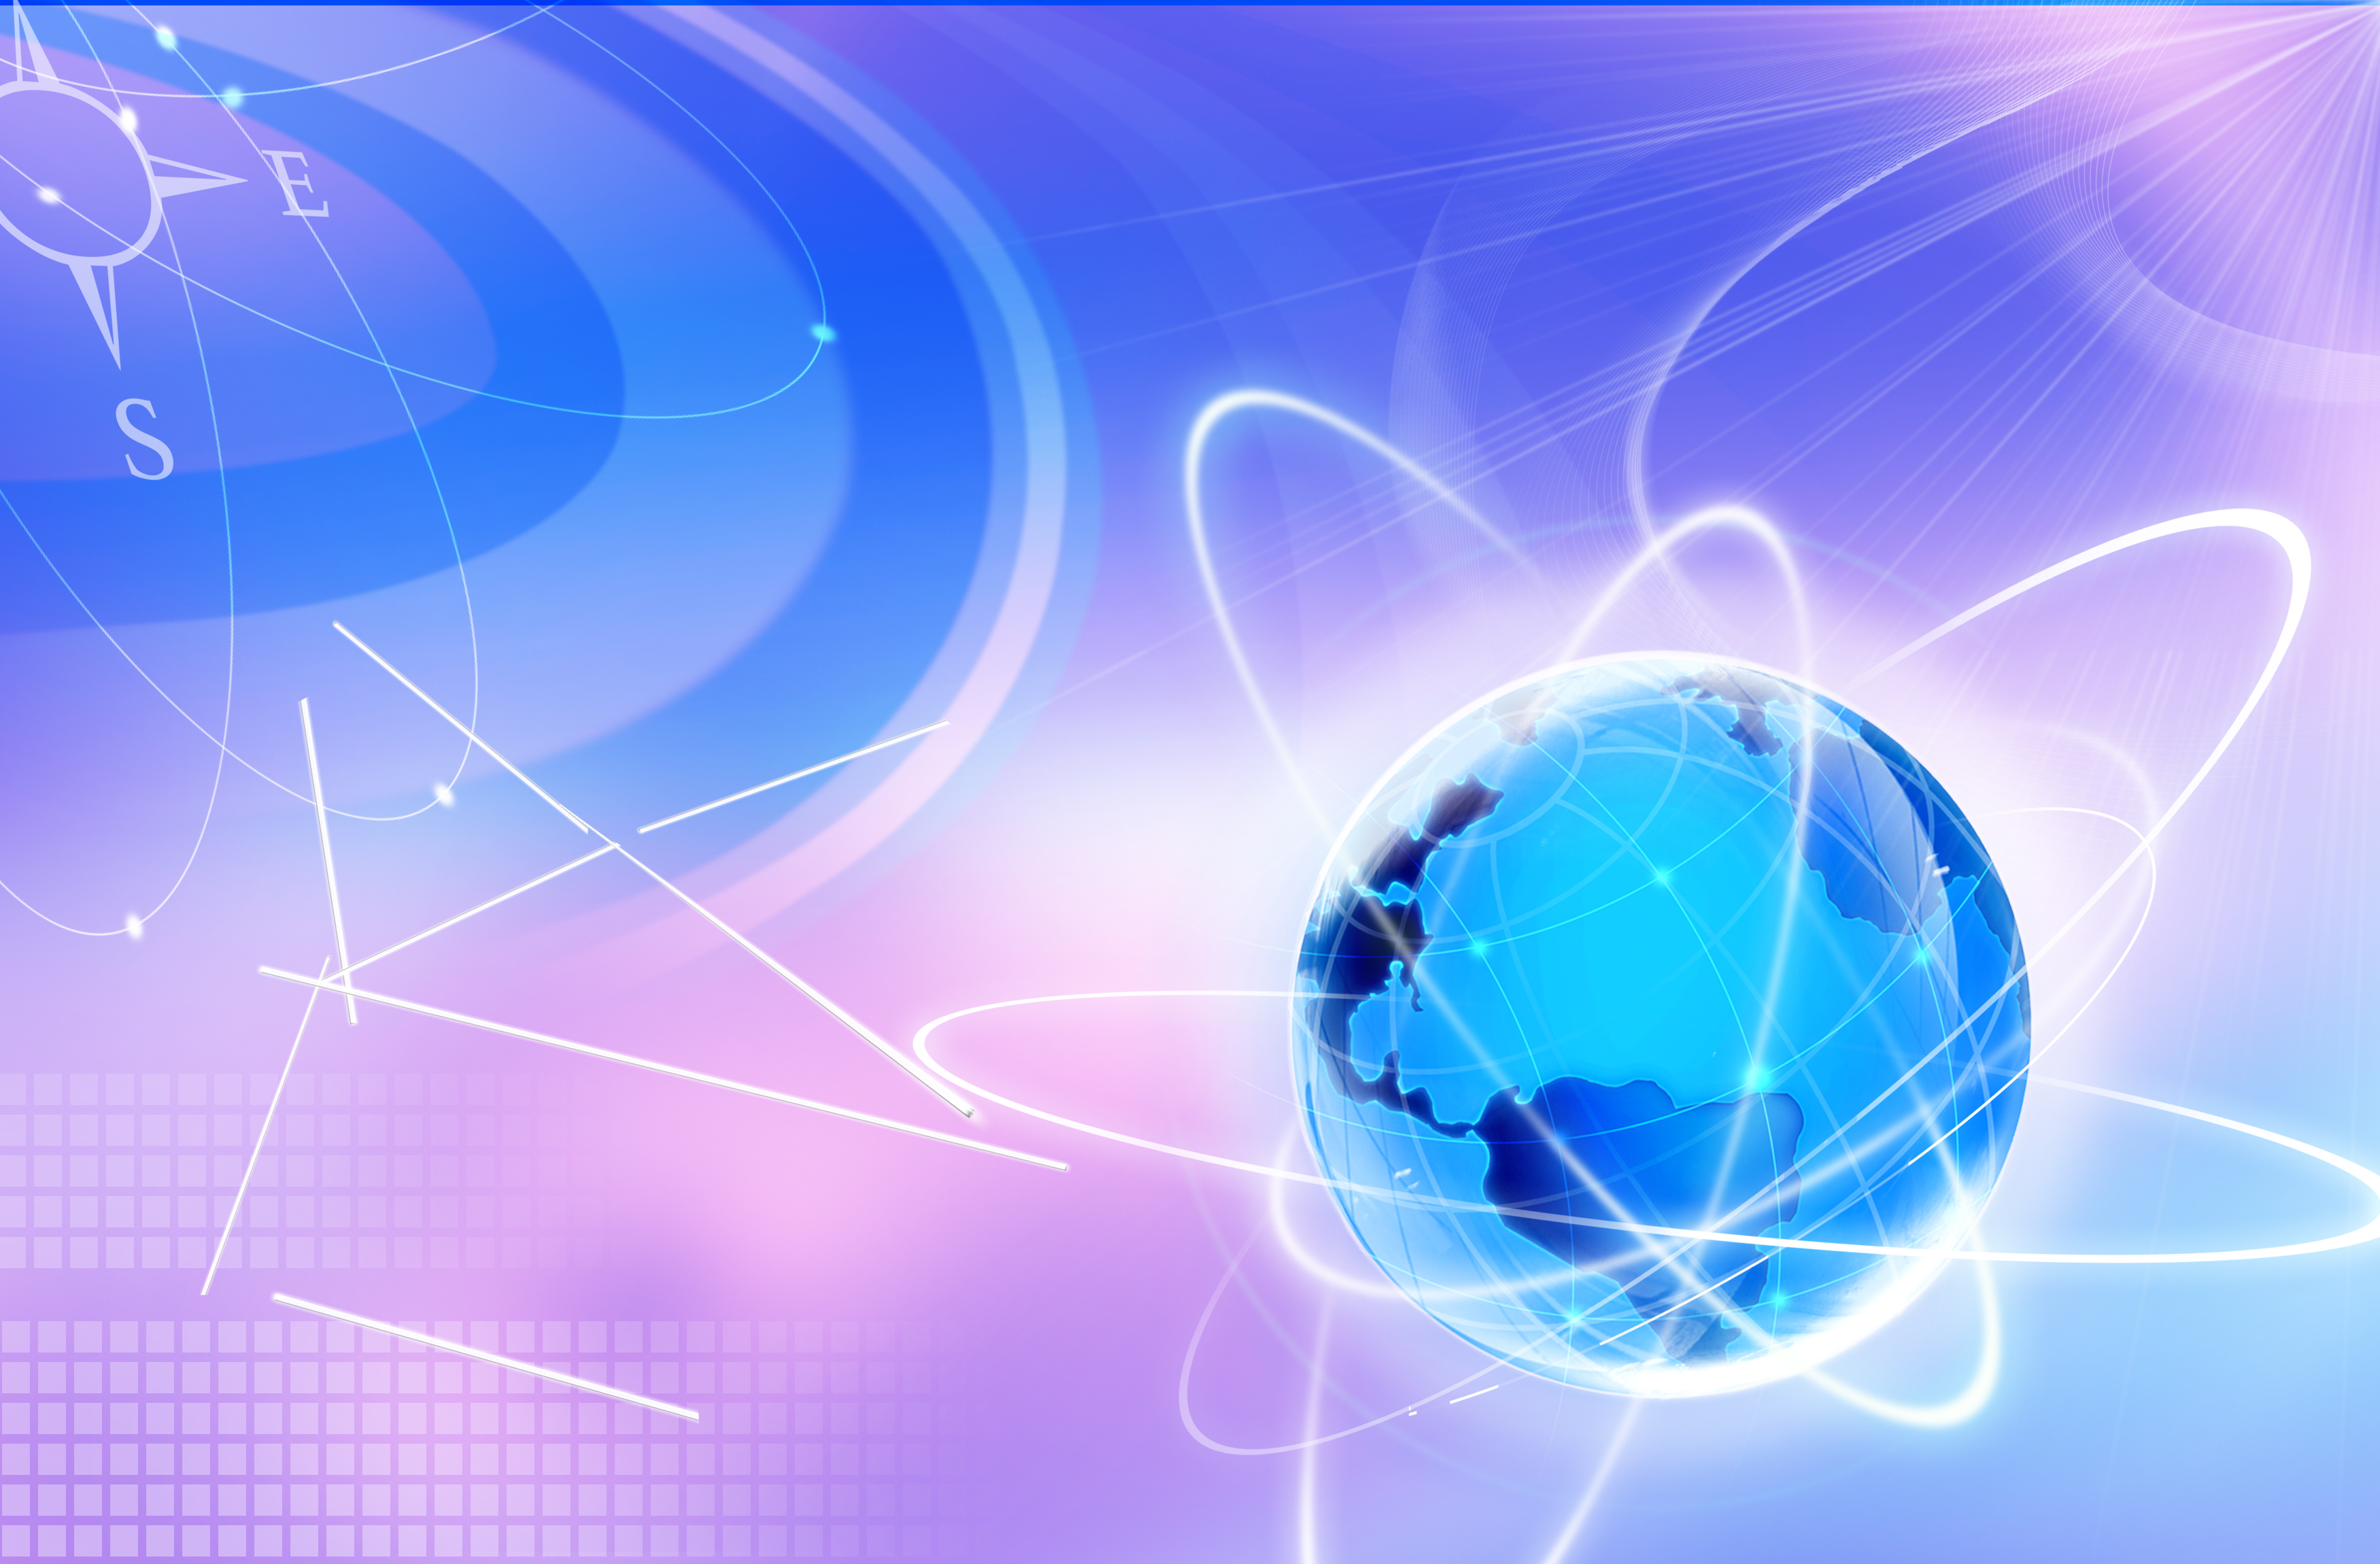 earth science and technology internet purple background material  science  technology  earth